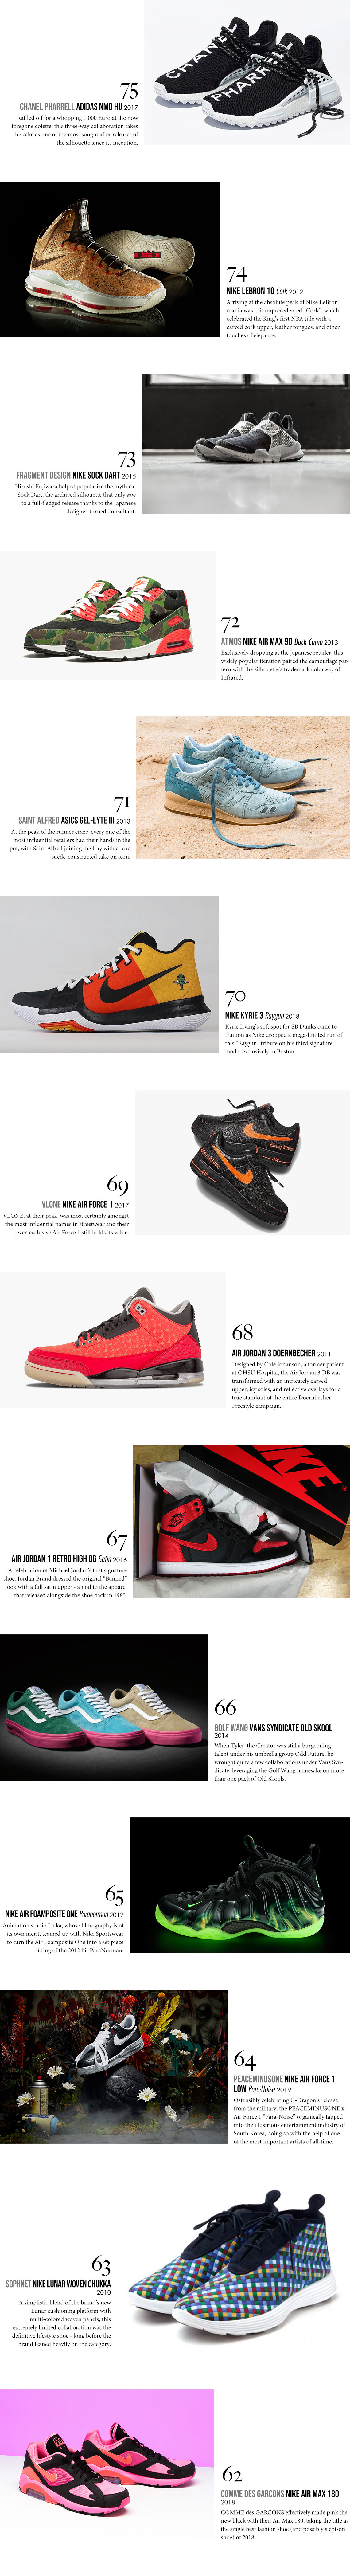 Sneaker News 100 Best Sneakers Of The Decade